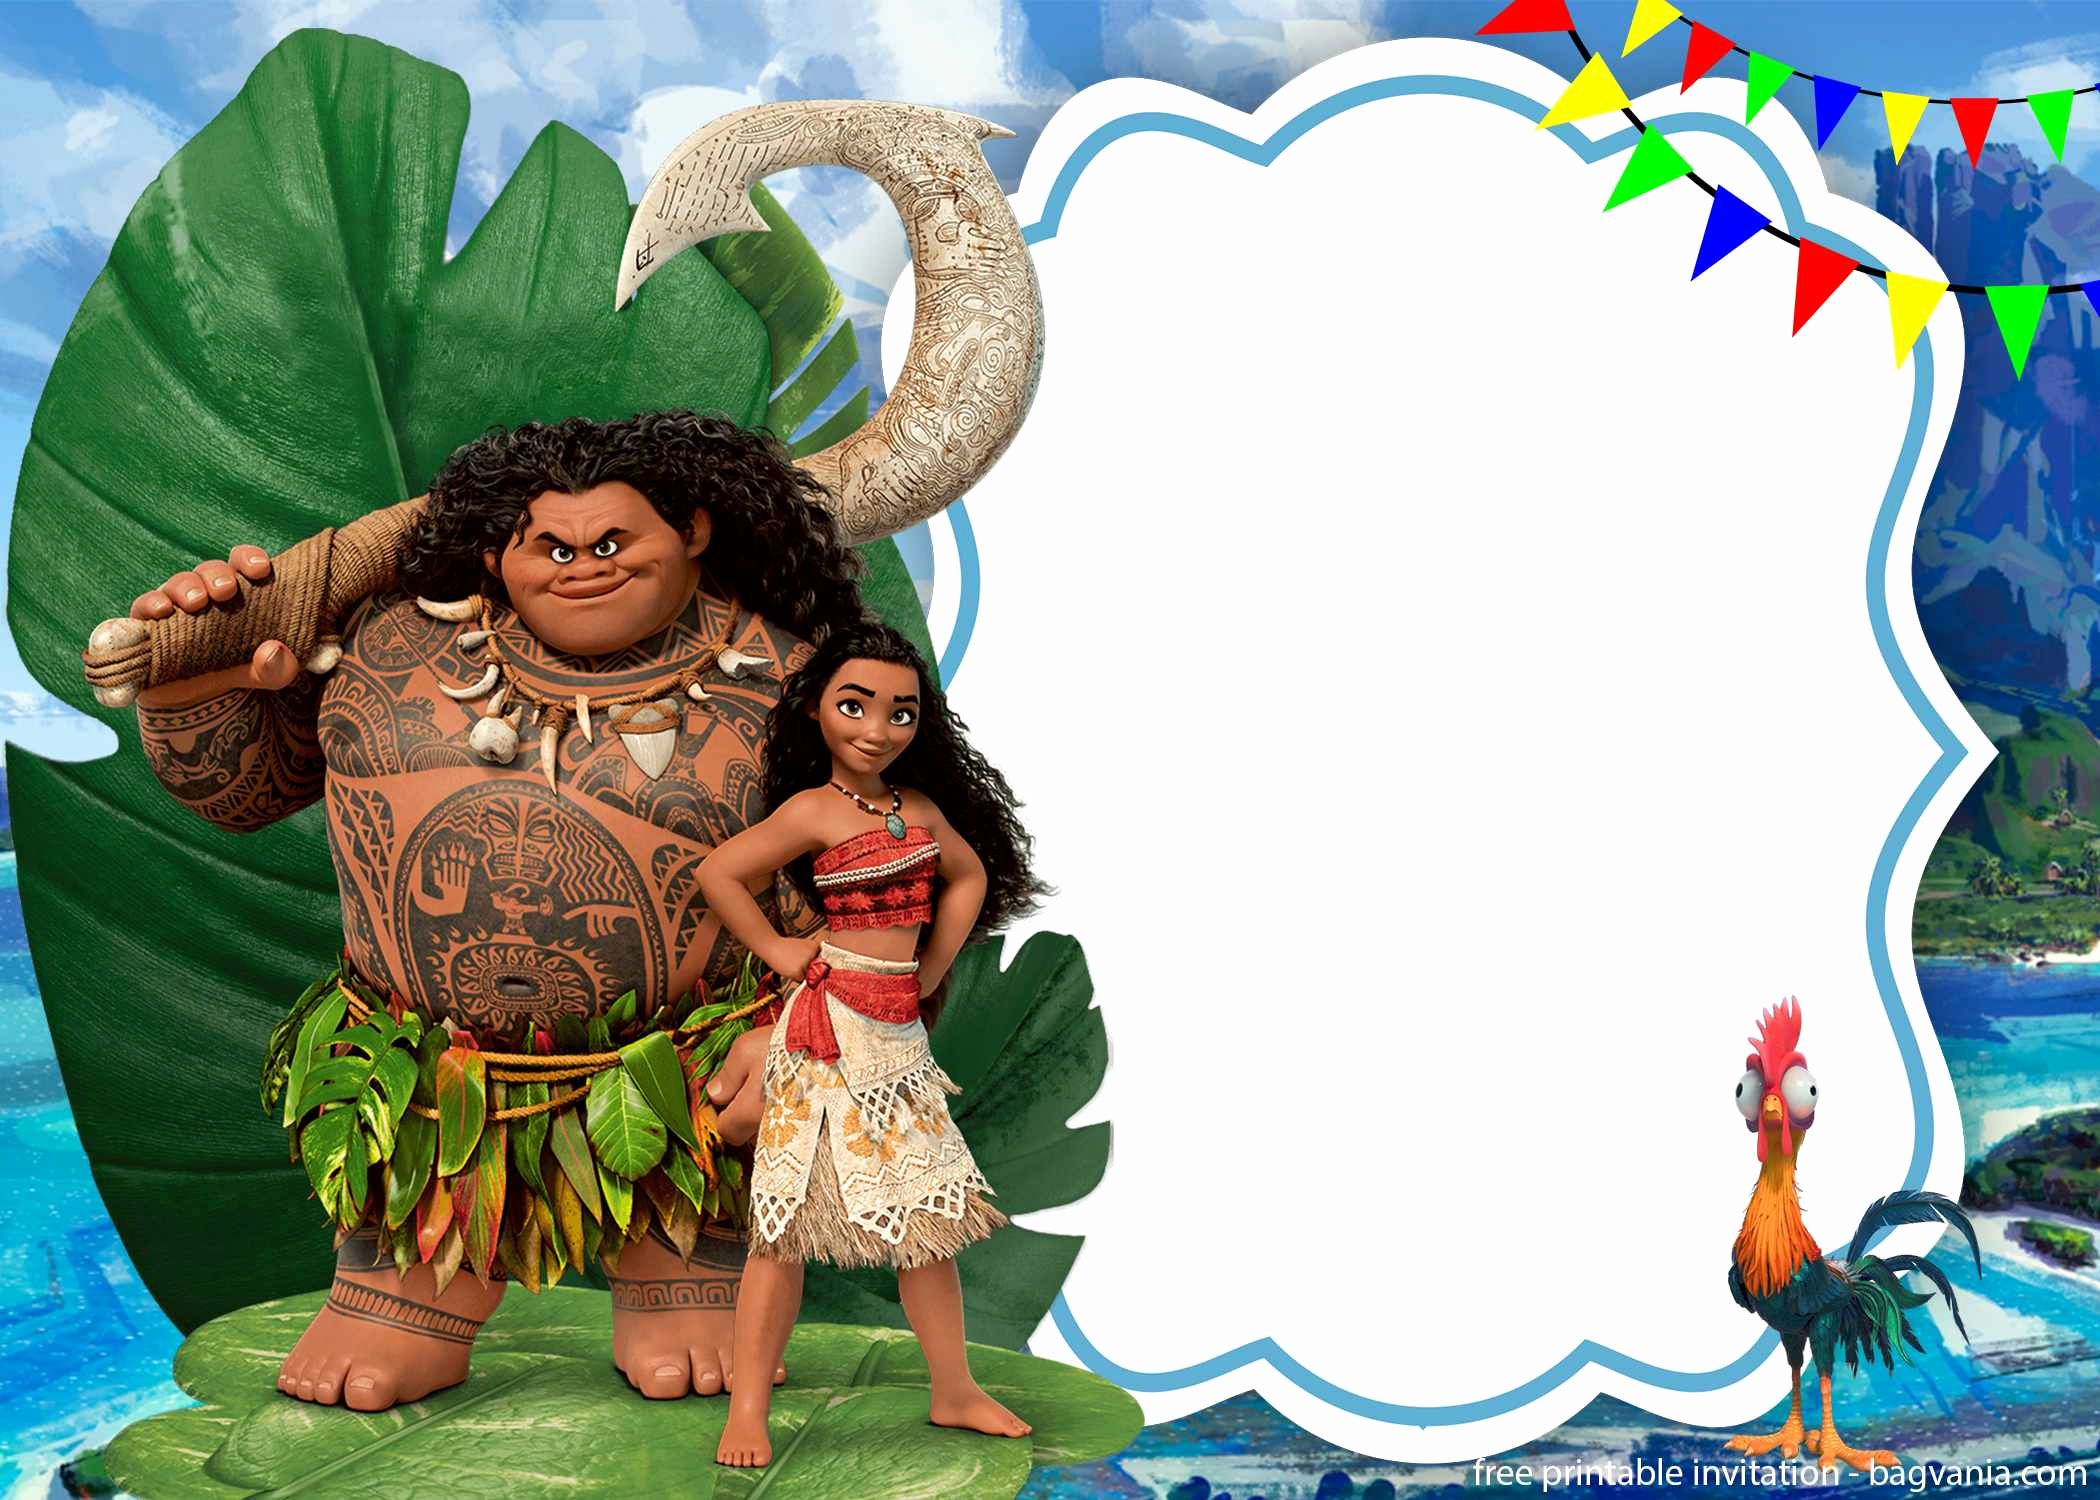 Moana Invitation Template Free Elegant Free Printable Moana Birthday Invitation Template – Free